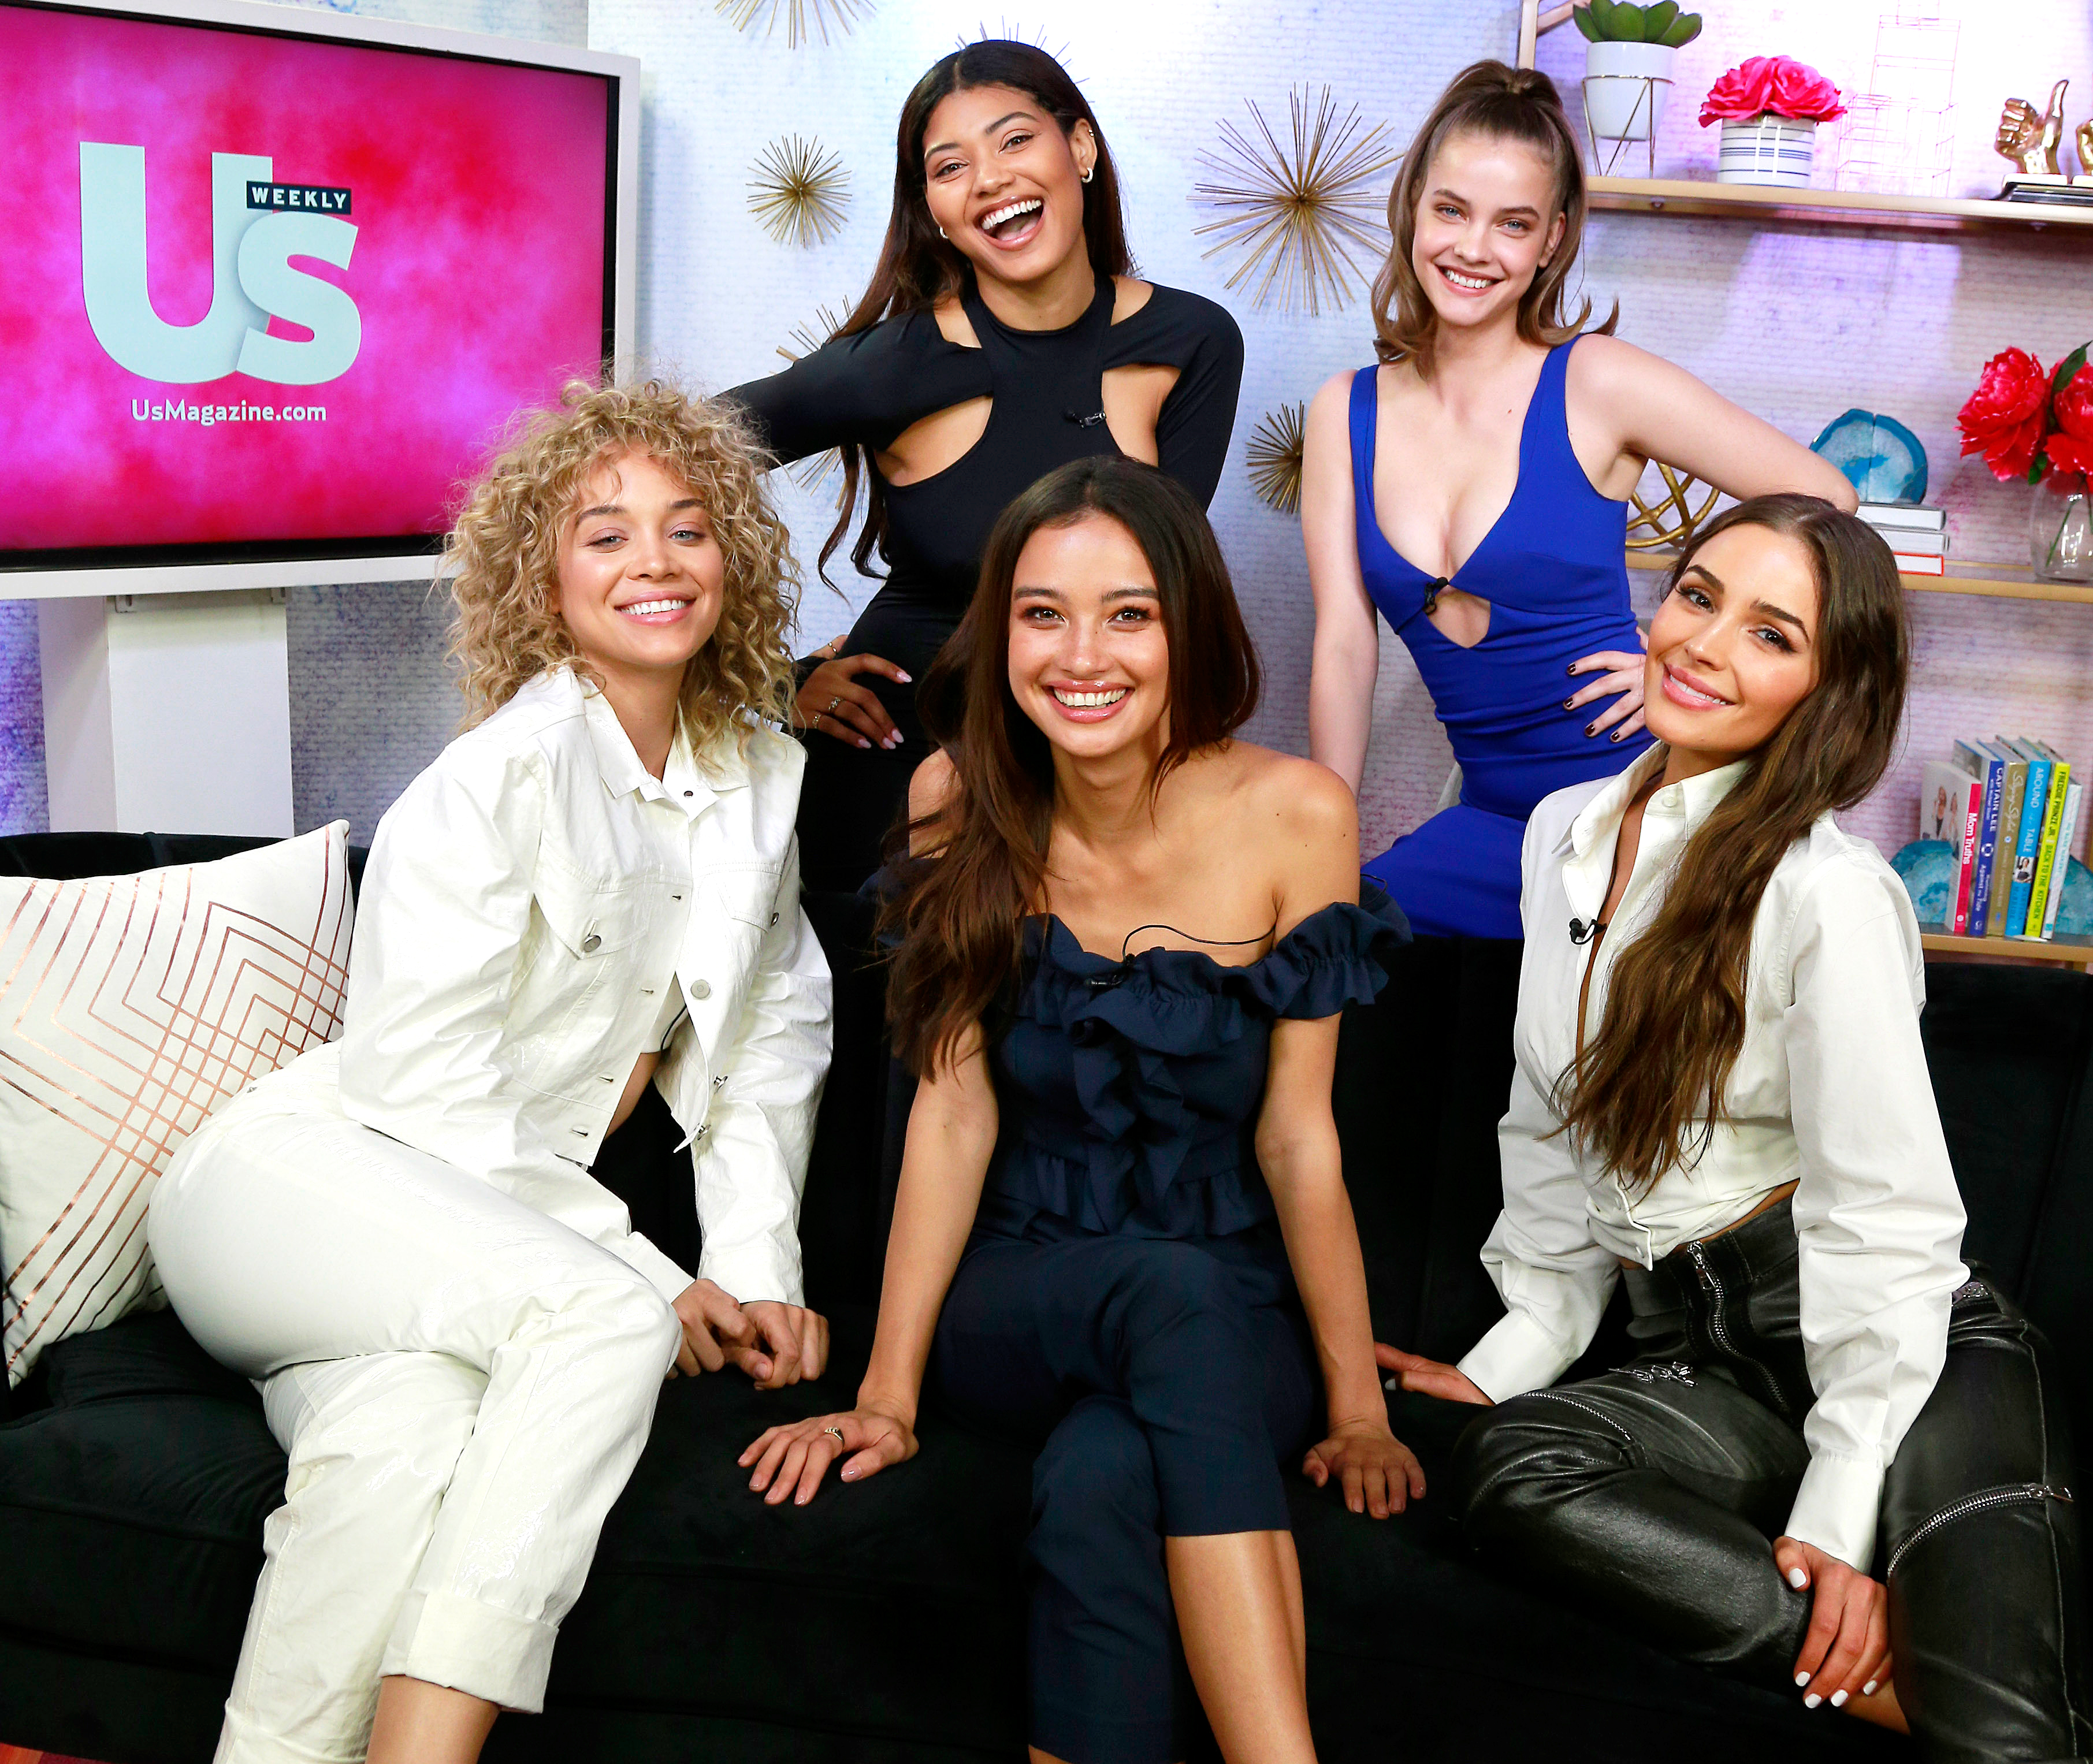 SI Swimsuit Models Reveal How They Prepped for Their Shoots - Sports Illustrated swimsuit models pose at the AMI studio on May 8, 2019 in New York City.